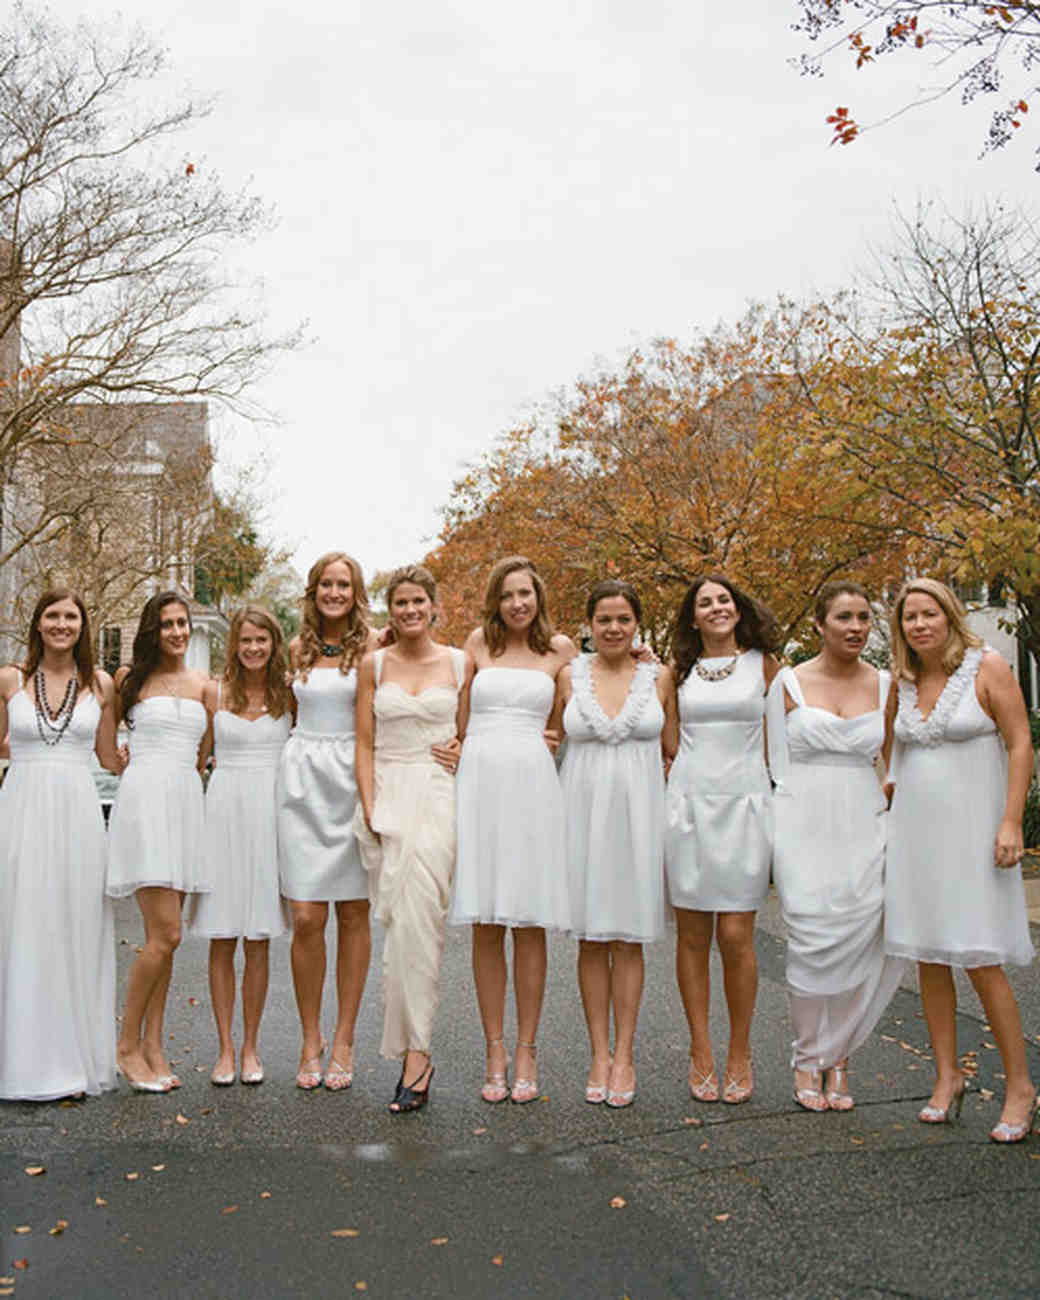 10 Bridal Parties Wearing White At Real Weddings | Martha Stewart ...